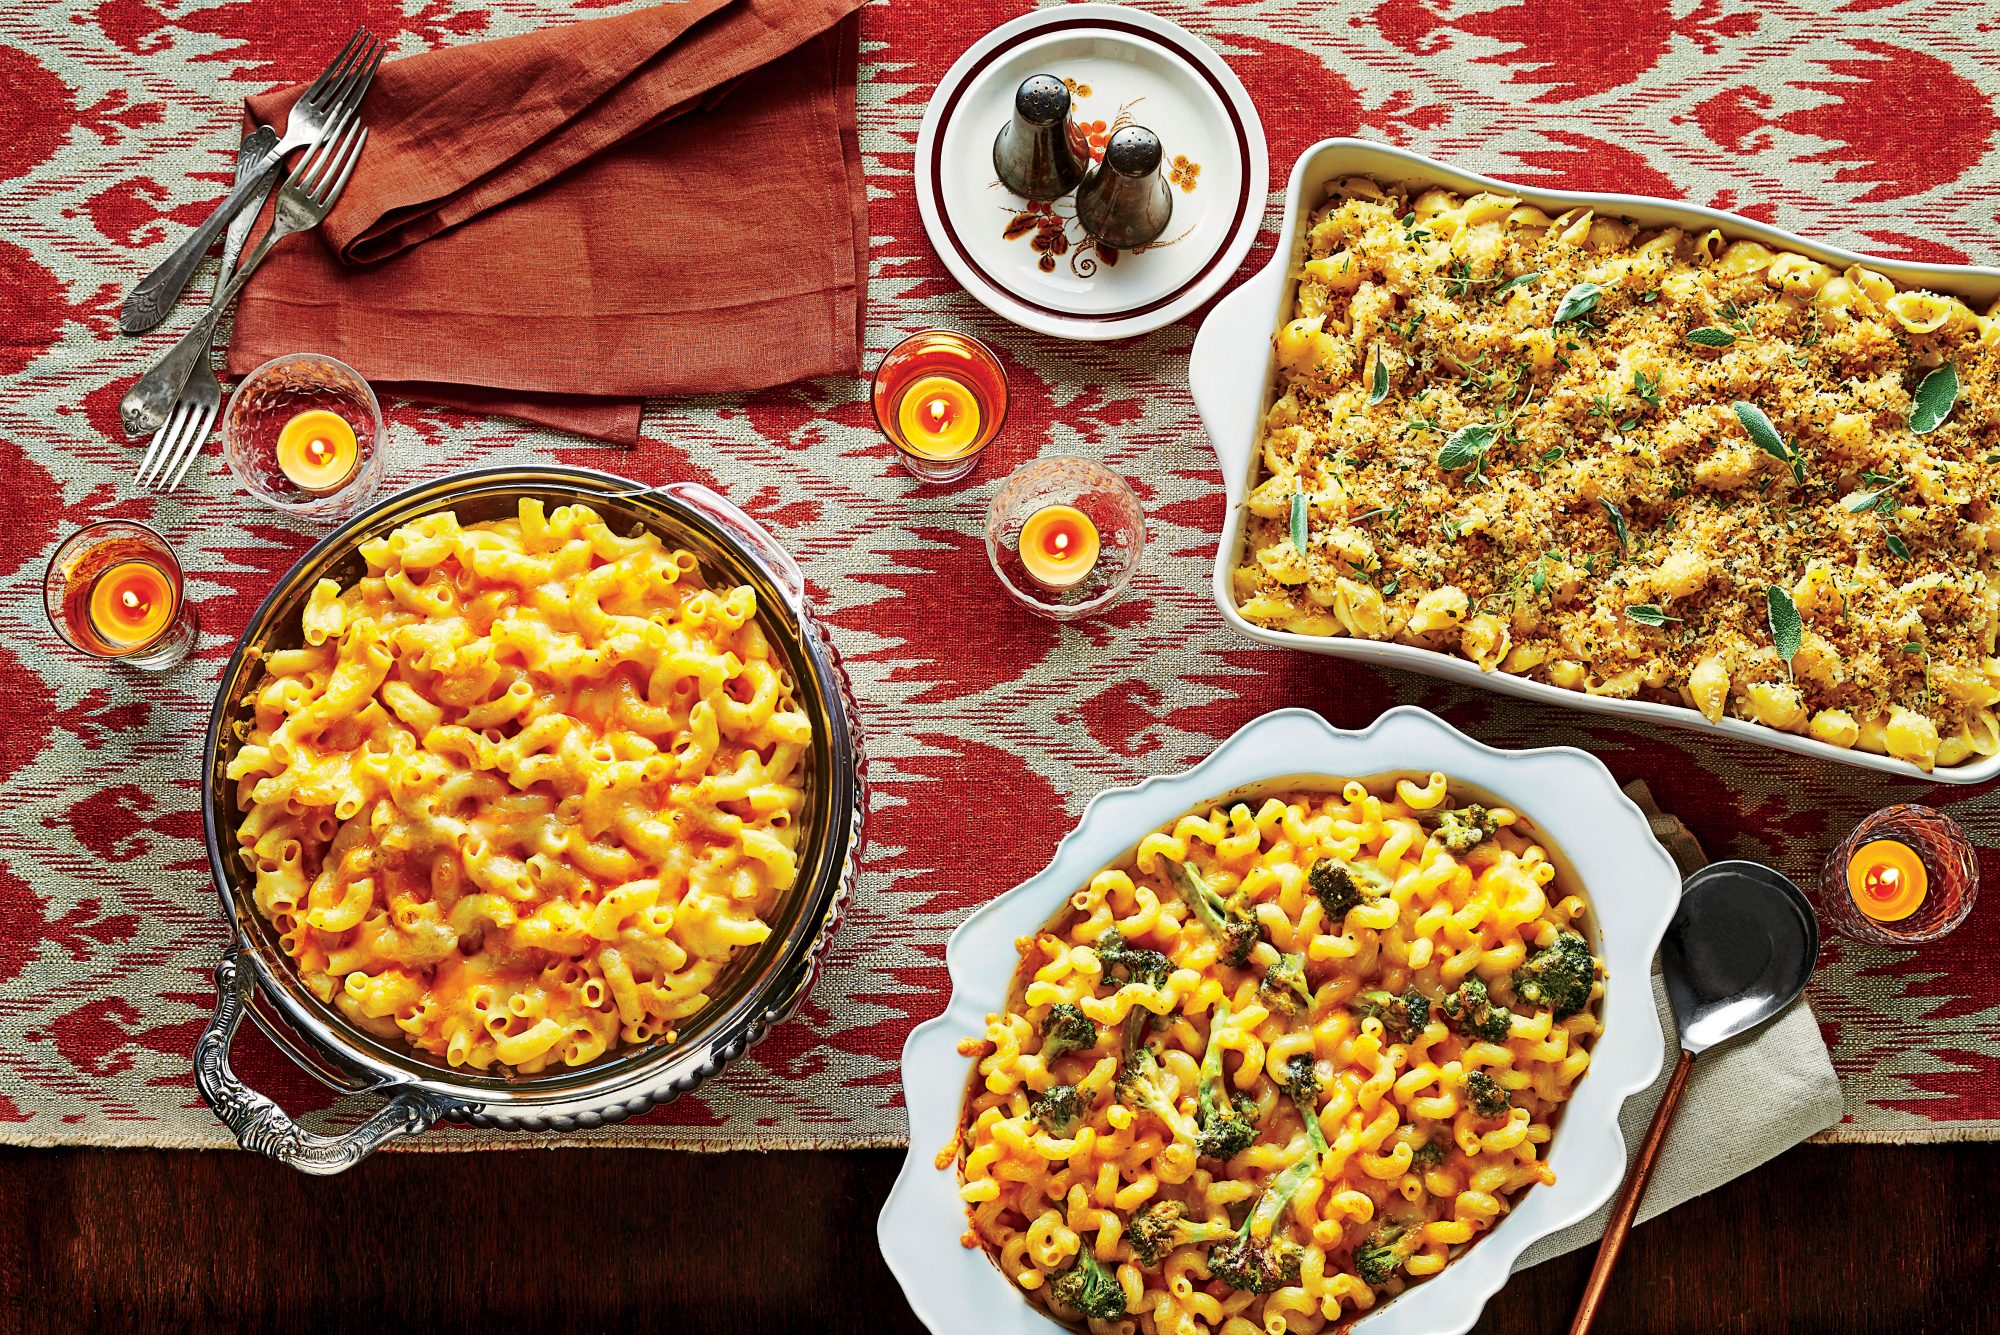 Roasted Broccoli Macaroni and Cheese